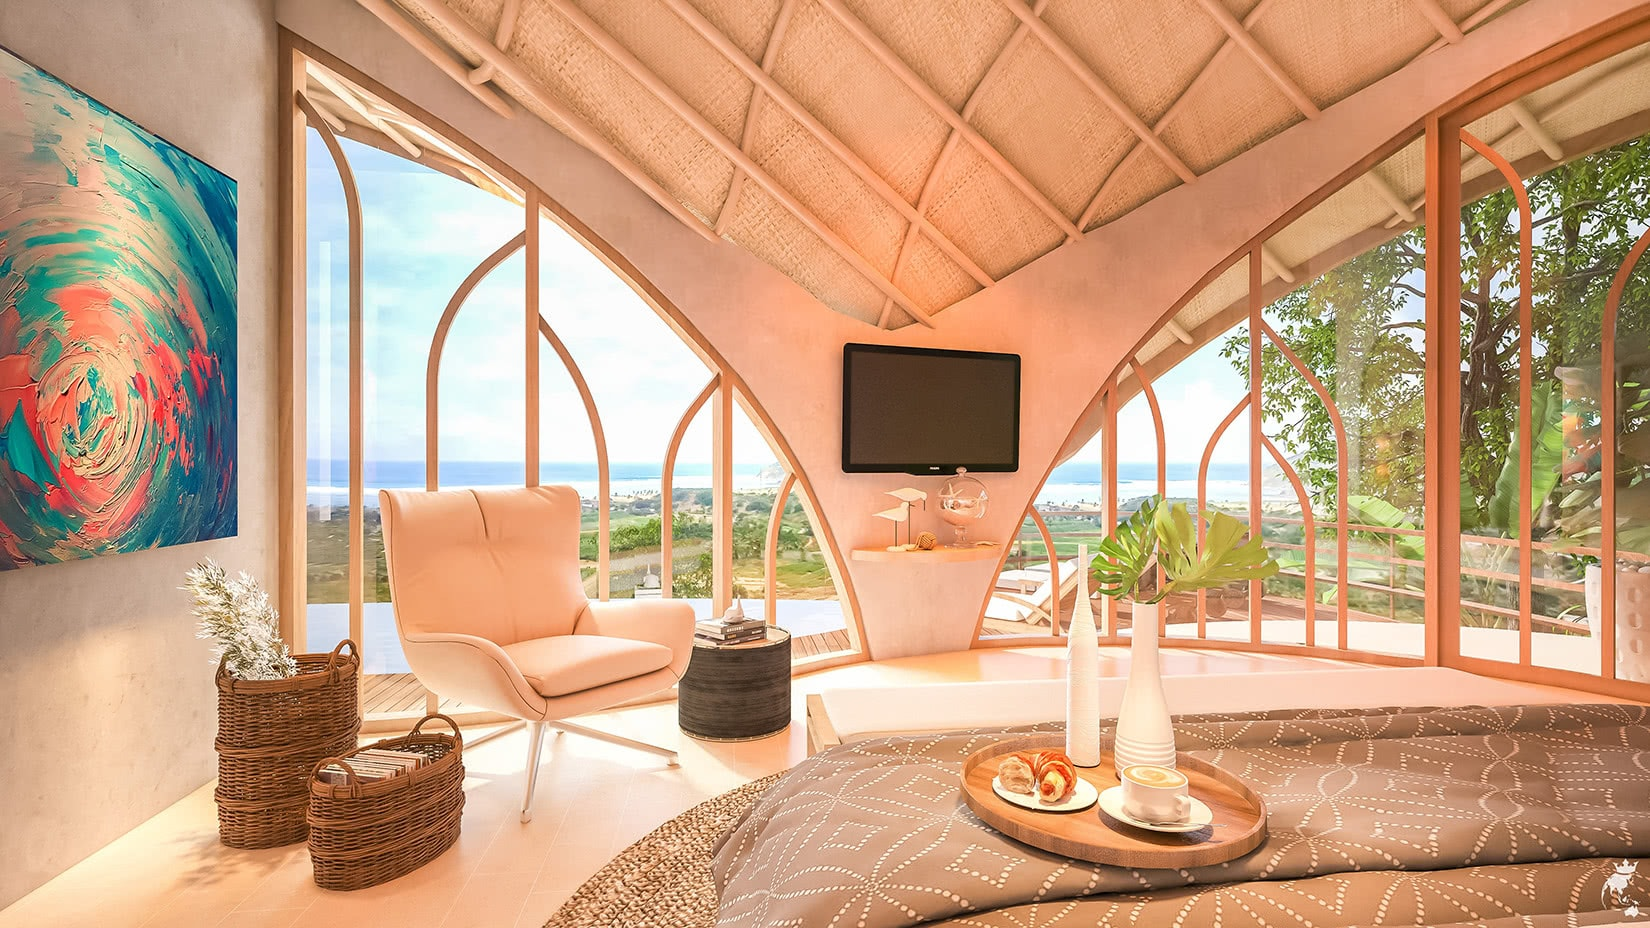 Kevin Deisser property invest island indonesia - Luxe Digital